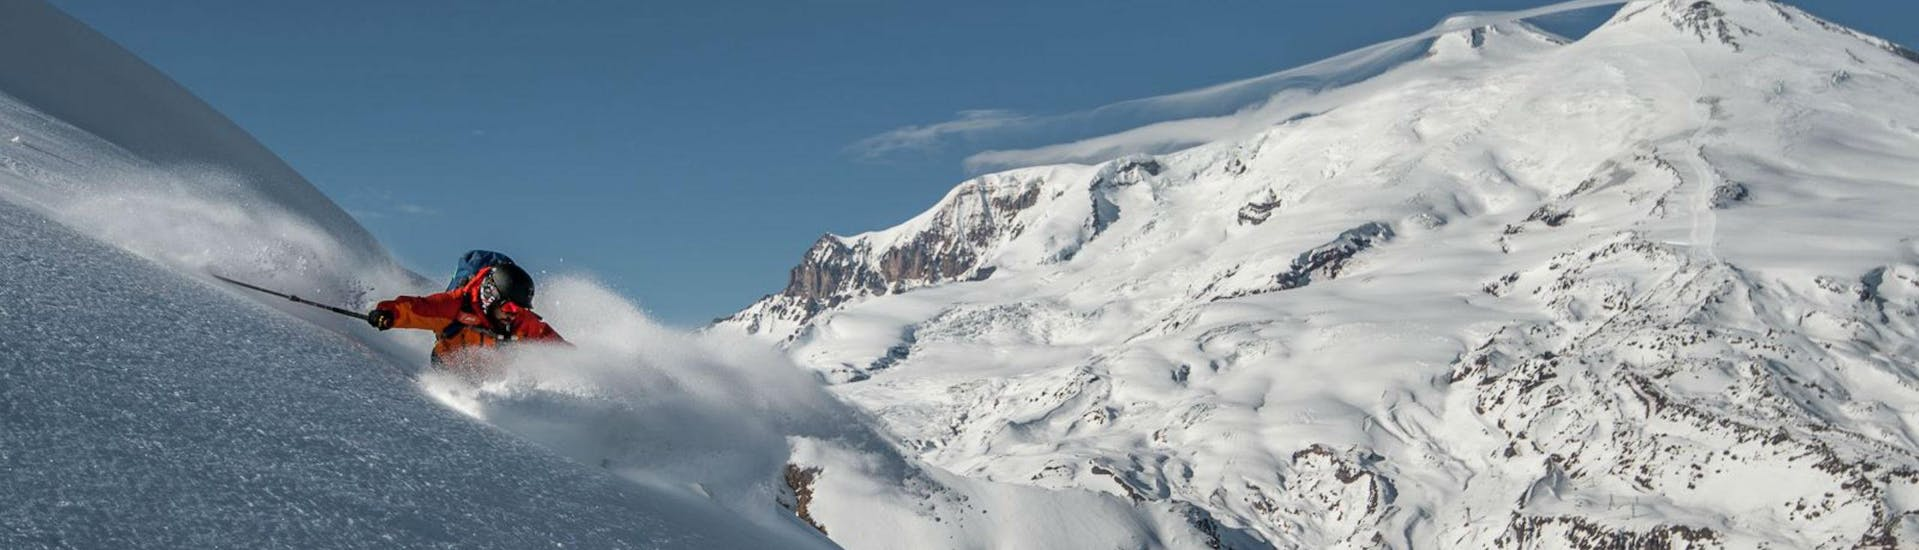 A skier is skiing through deep poweder snow while on his tour with Alpinist.